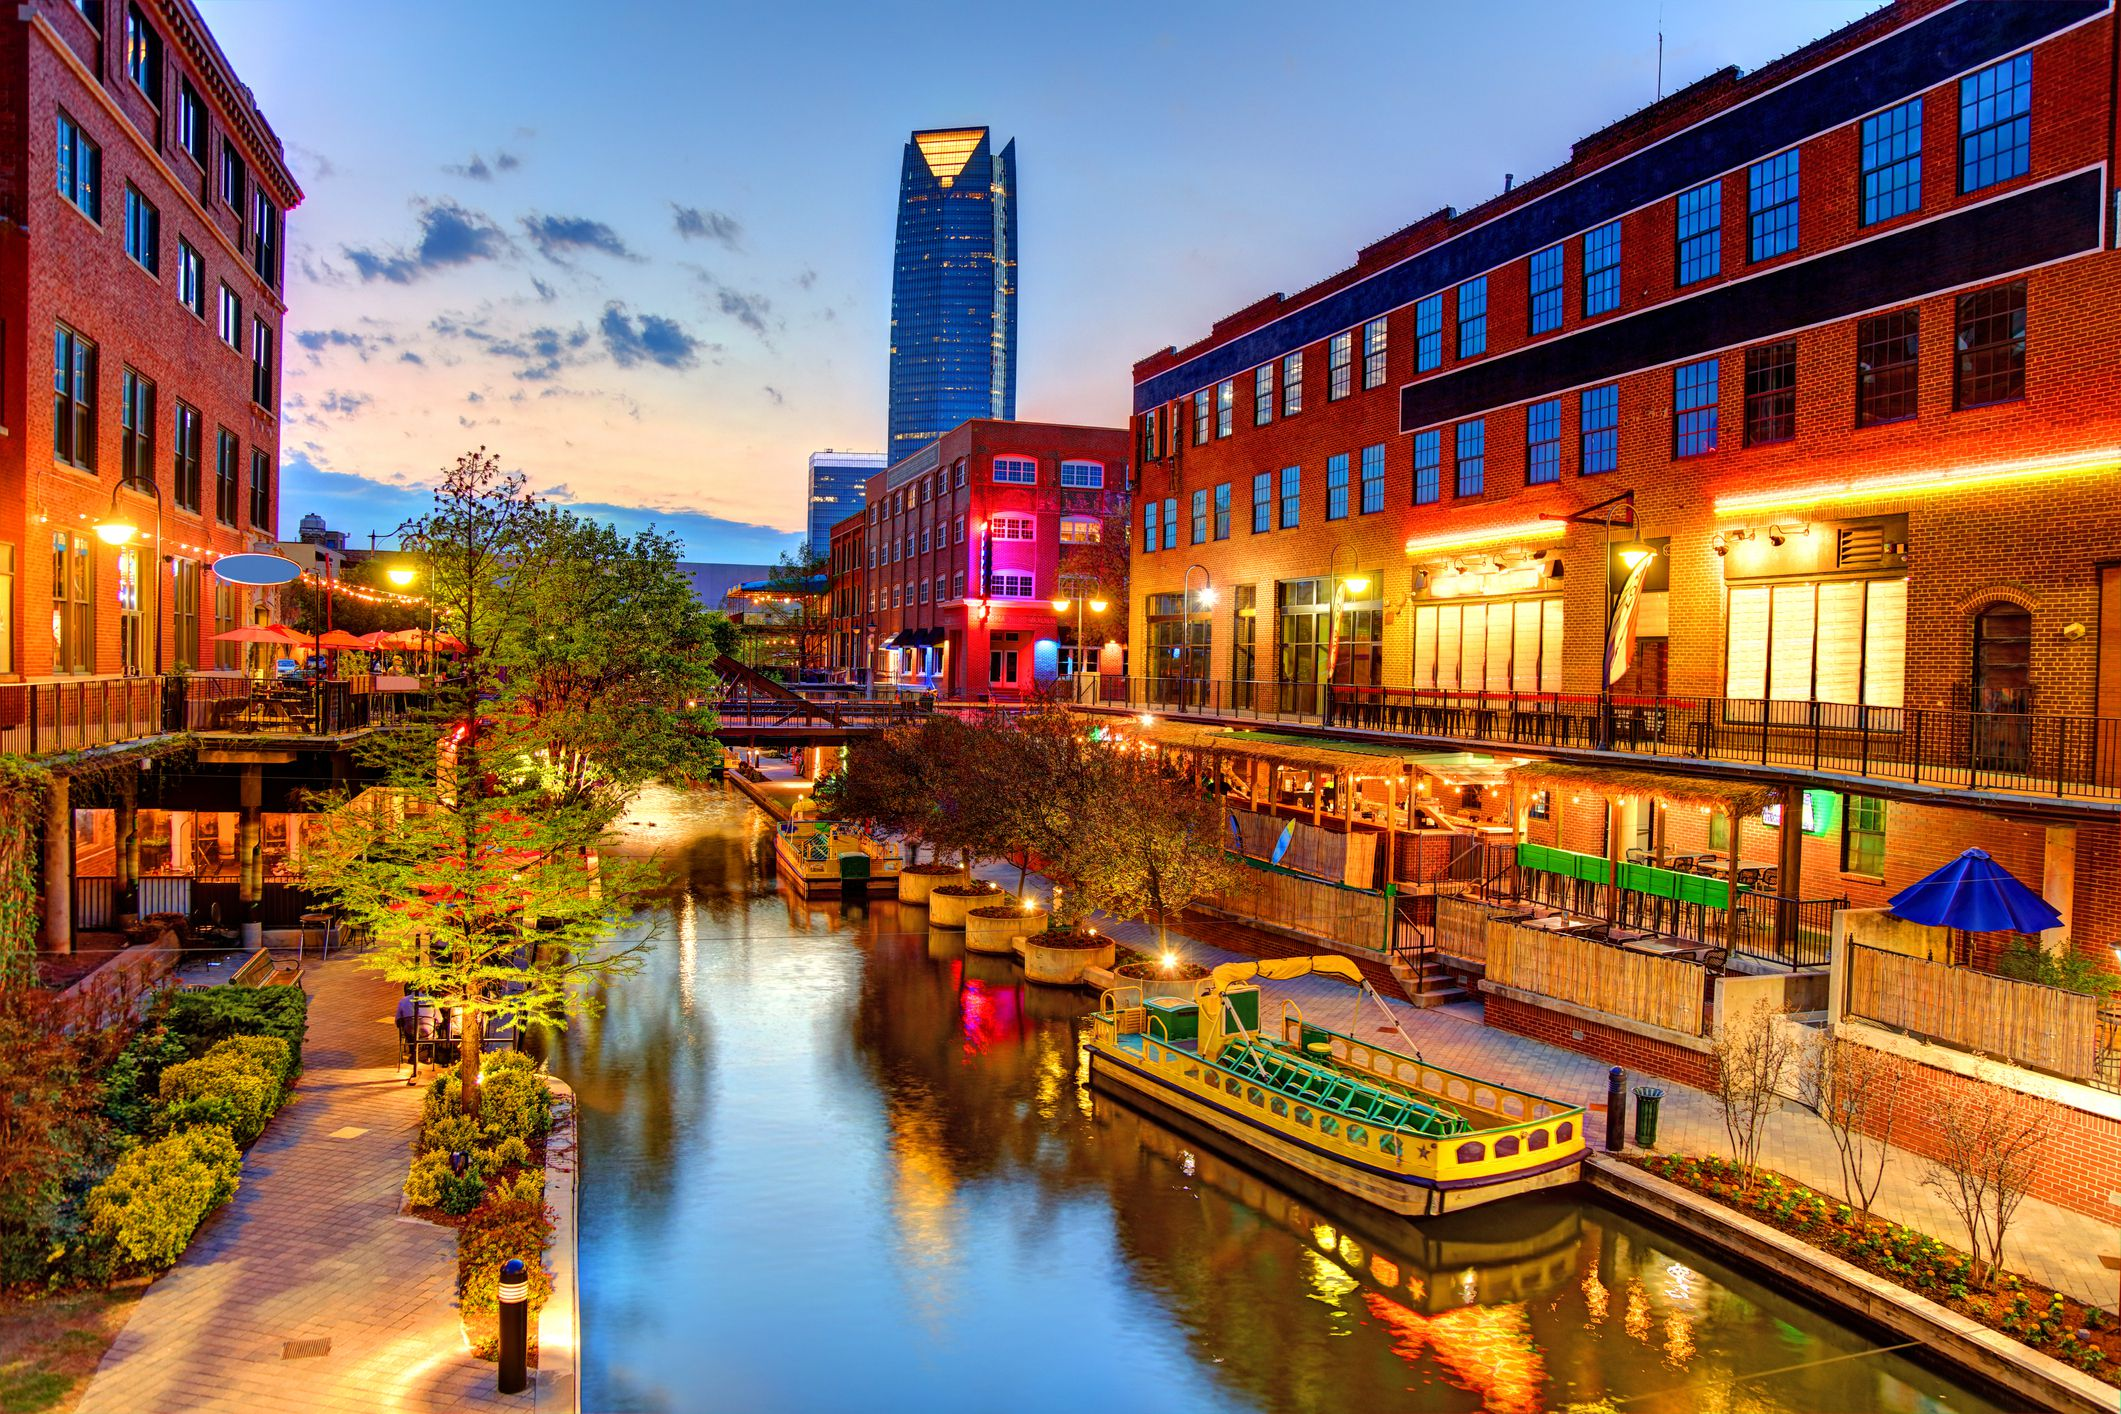 the bricktown canal in oklahoma city. Black Bedroom Furniture Sets. Home Design Ideas